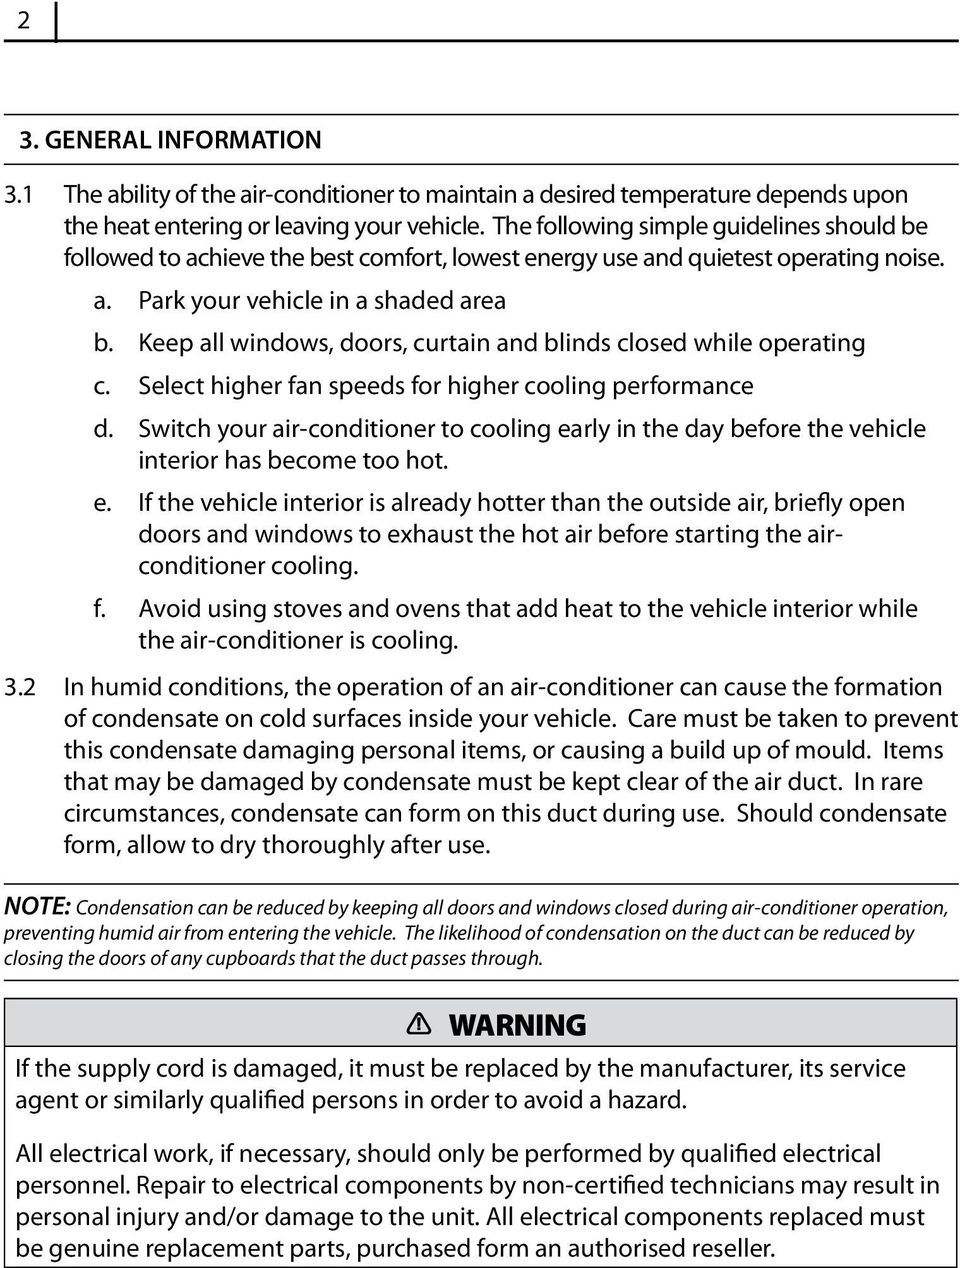 Ub1 air conditioning unit operating manual pdf keep all windows doors curtain and blinds closed while operating c select higher sciox Gallery